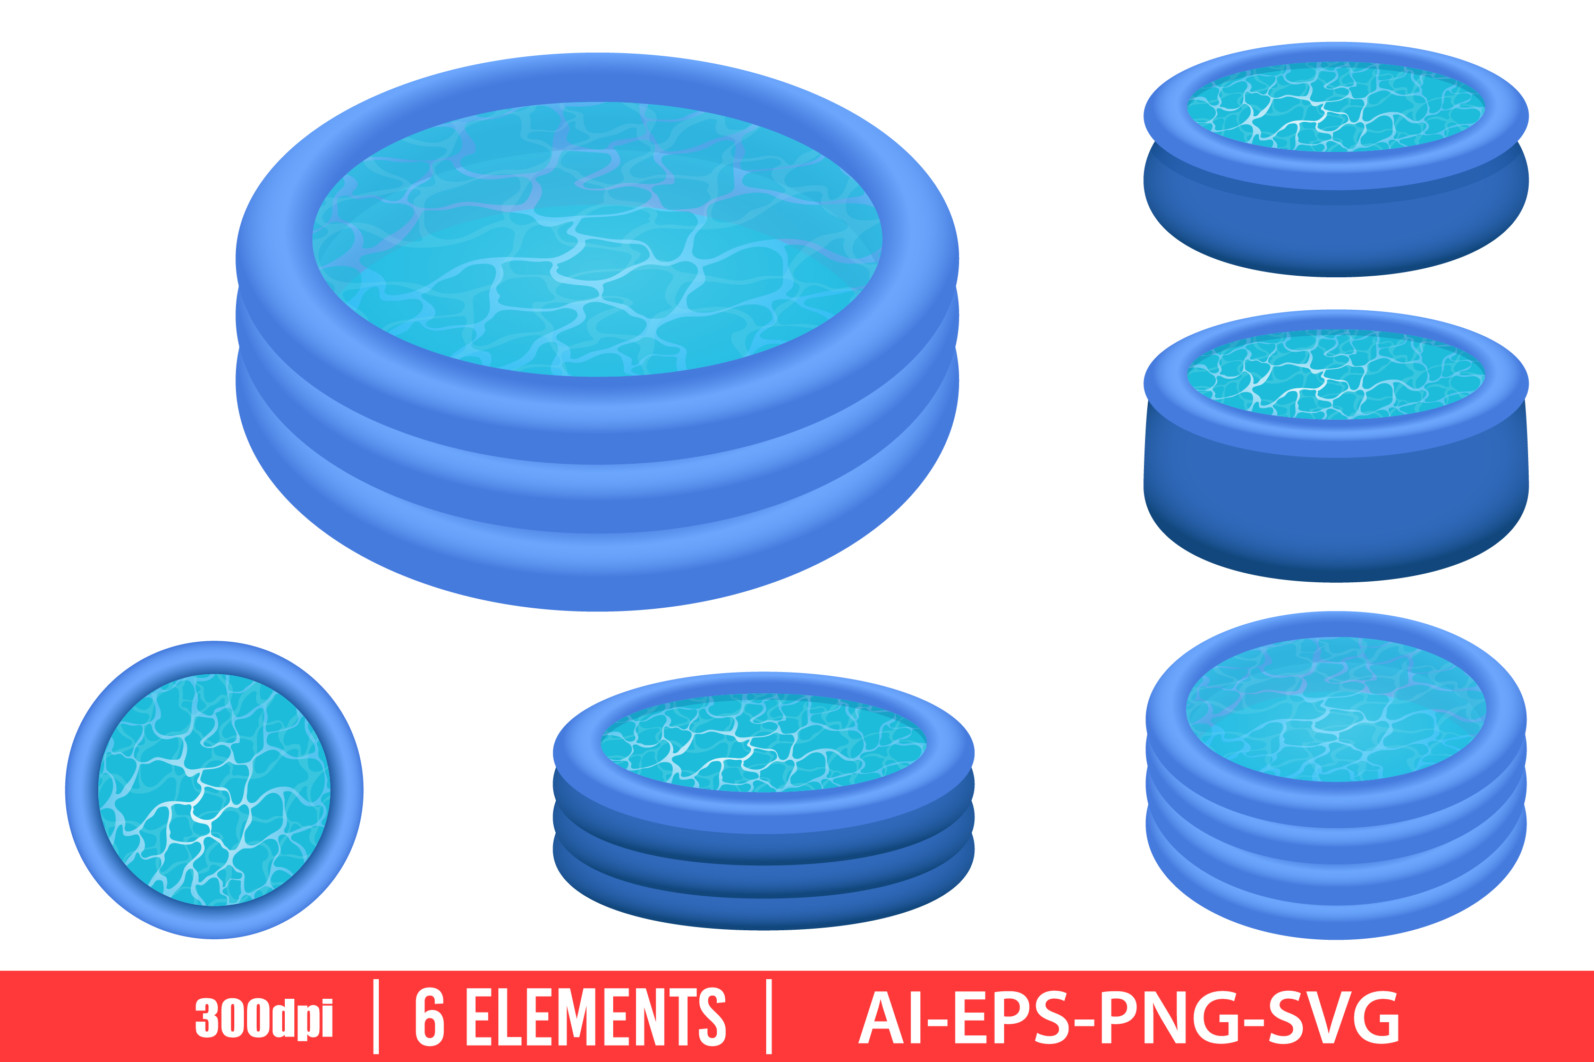 Inflatable pool clipart vector design illustration. Inflatable pool set. Vector Clipart Print - INFLATABLE POOL scaled -